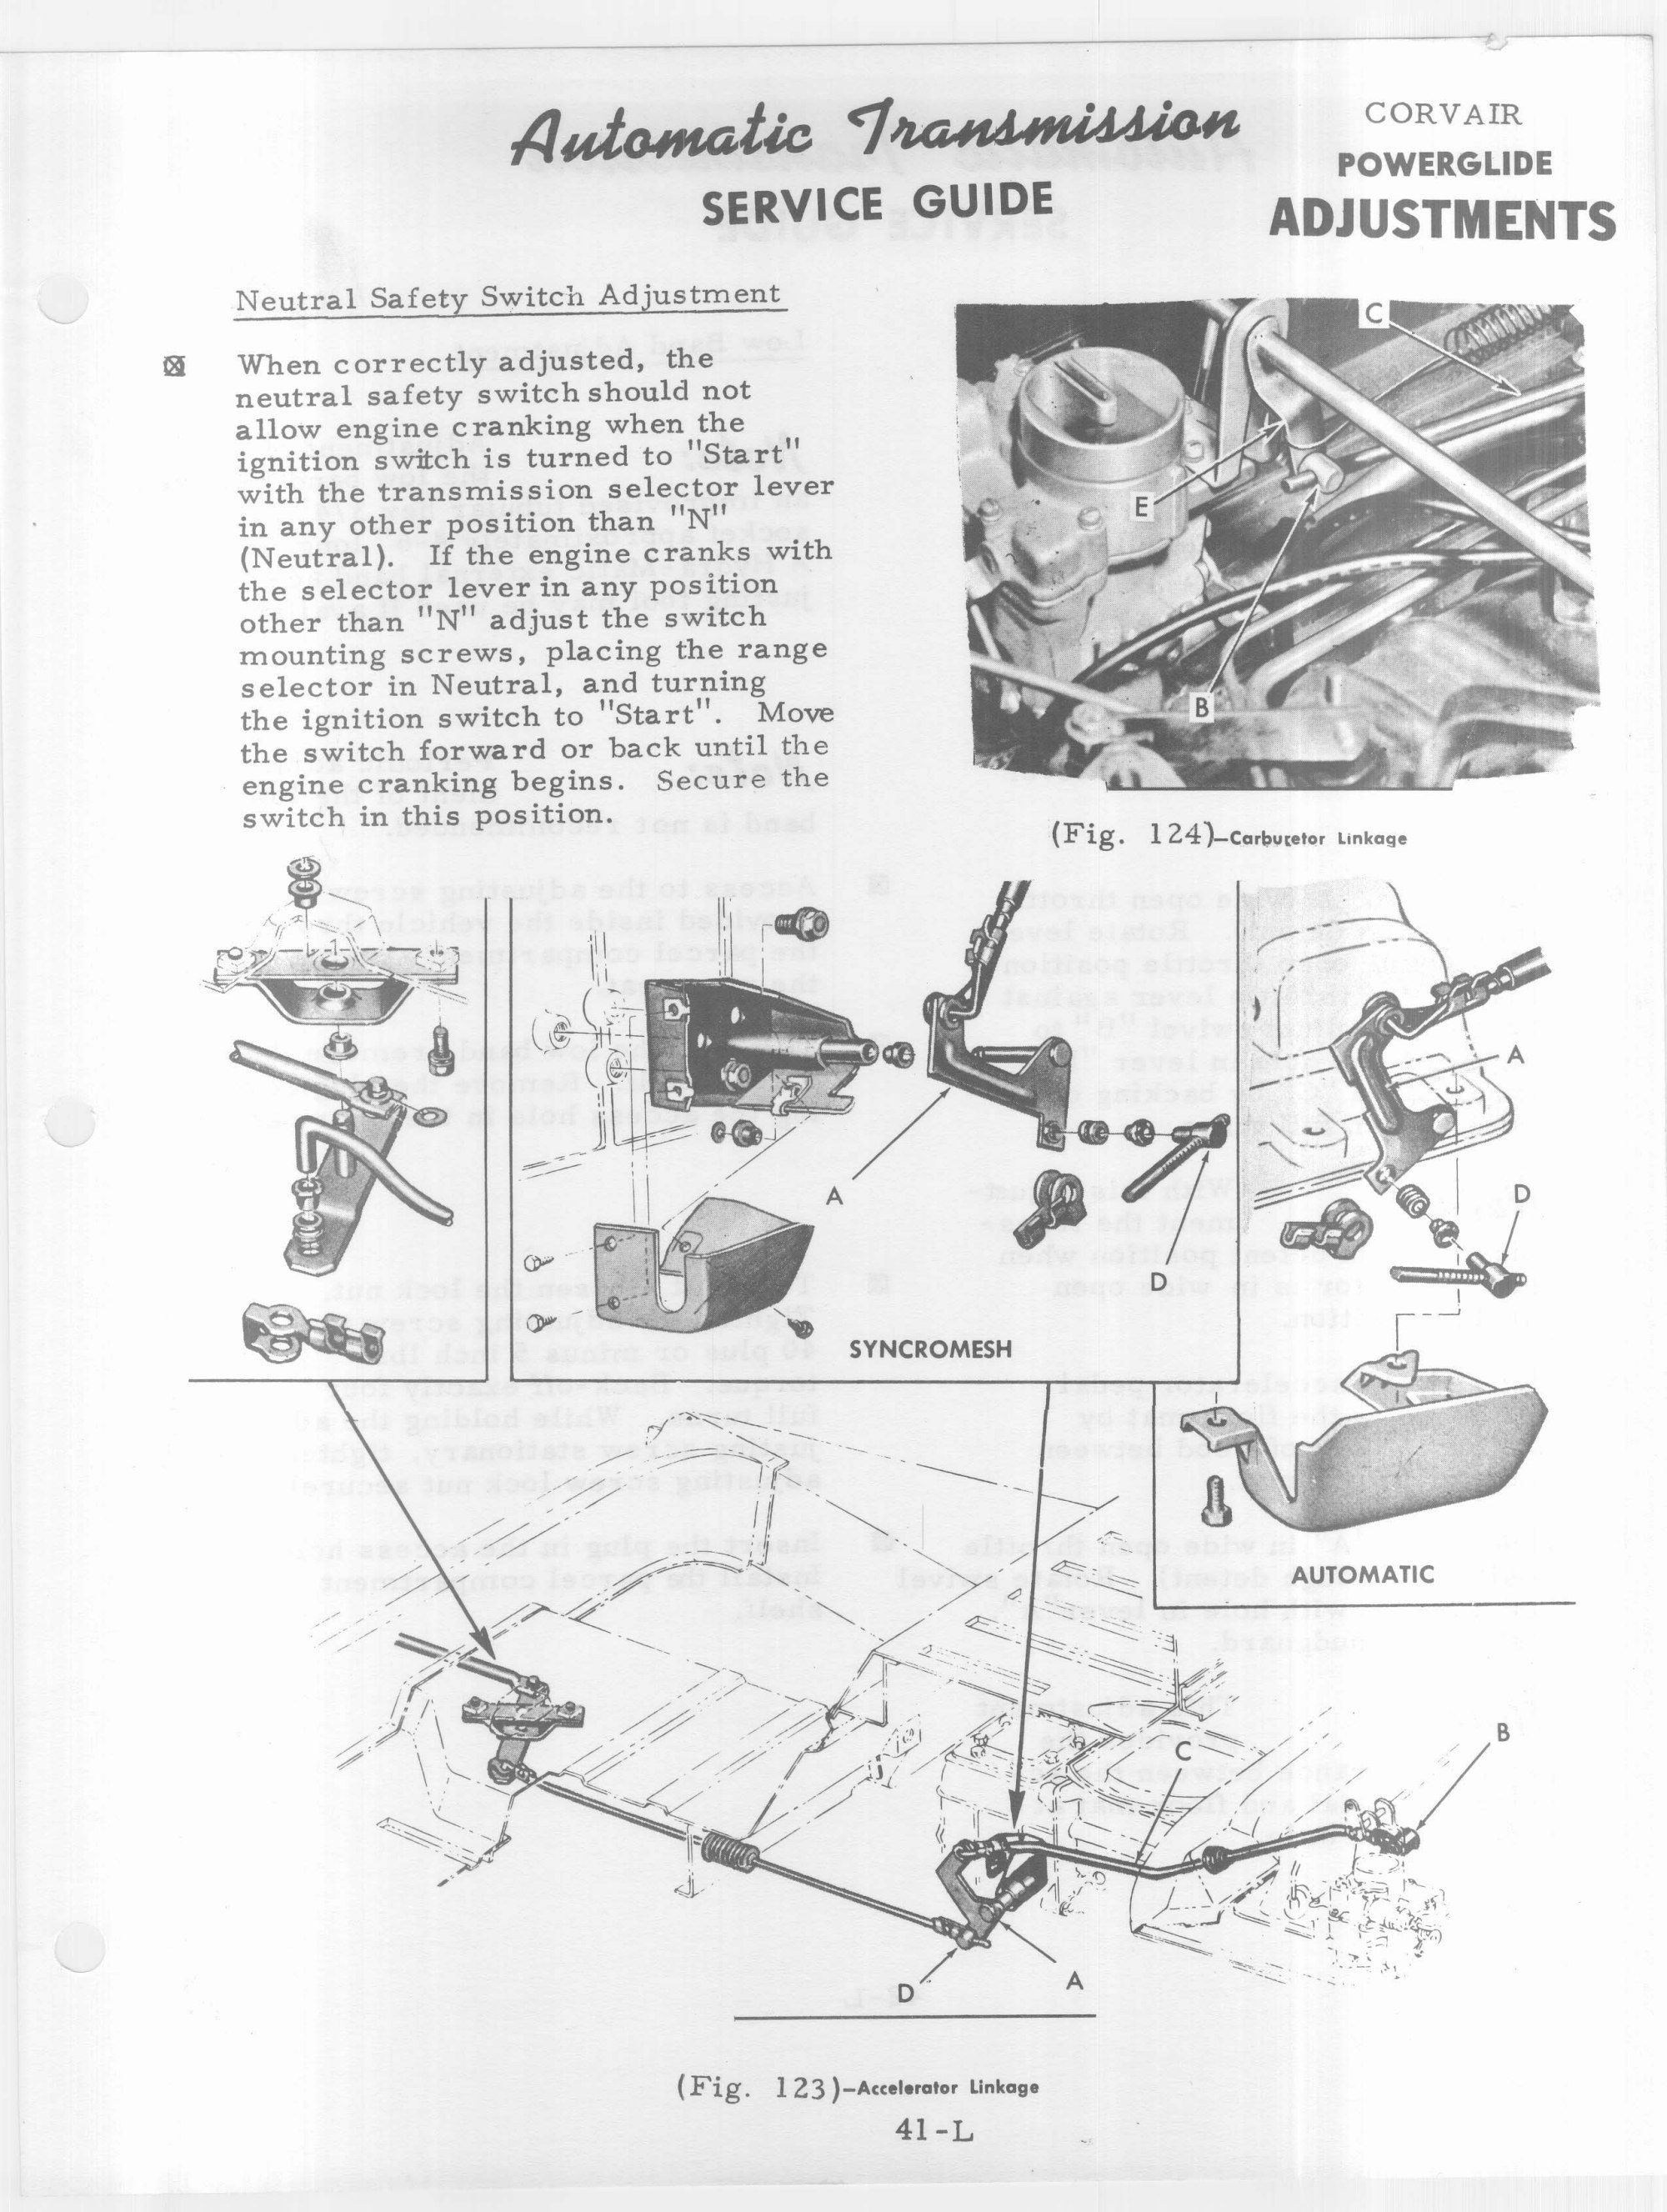 hight resolution of section l corvair powerglide l corvairpowerglide0006 jpg